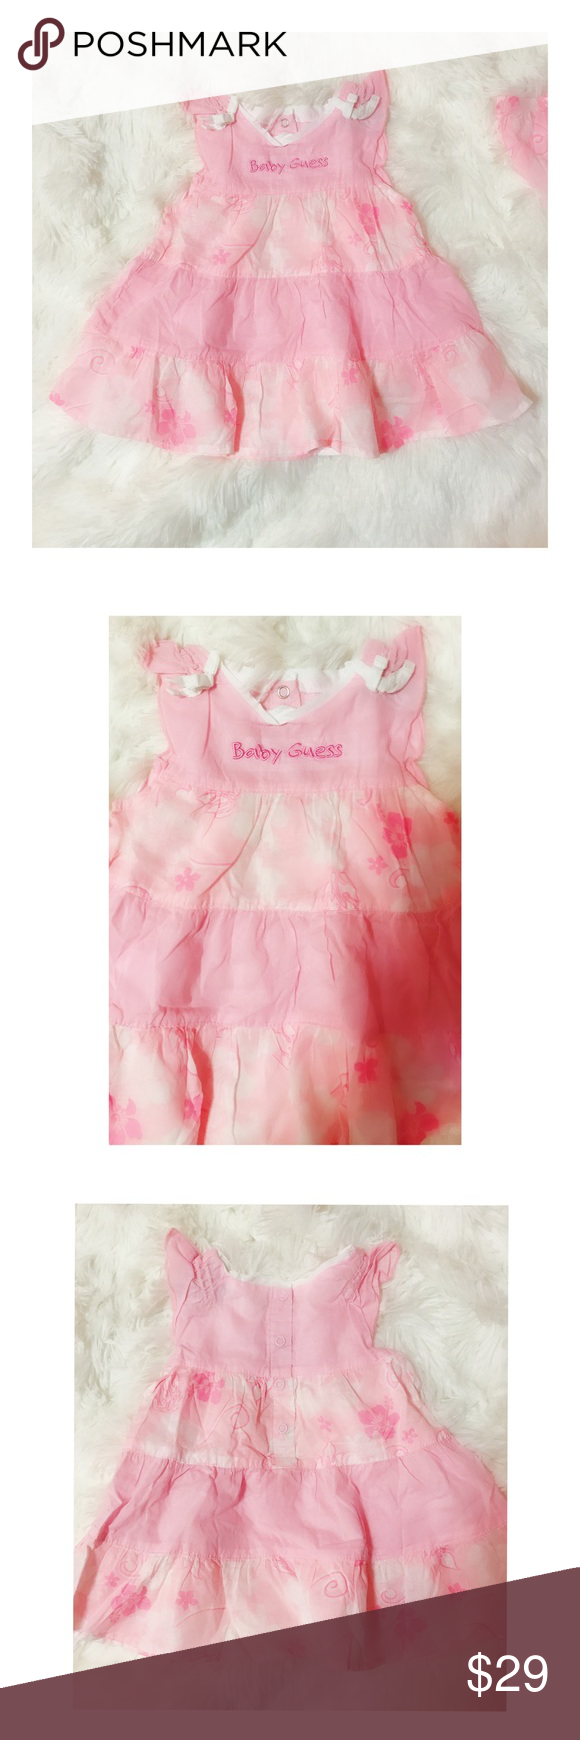 1087605663f6 Gorgeous pink baby guess dress condition worn only once or twice for a  special occasion guess